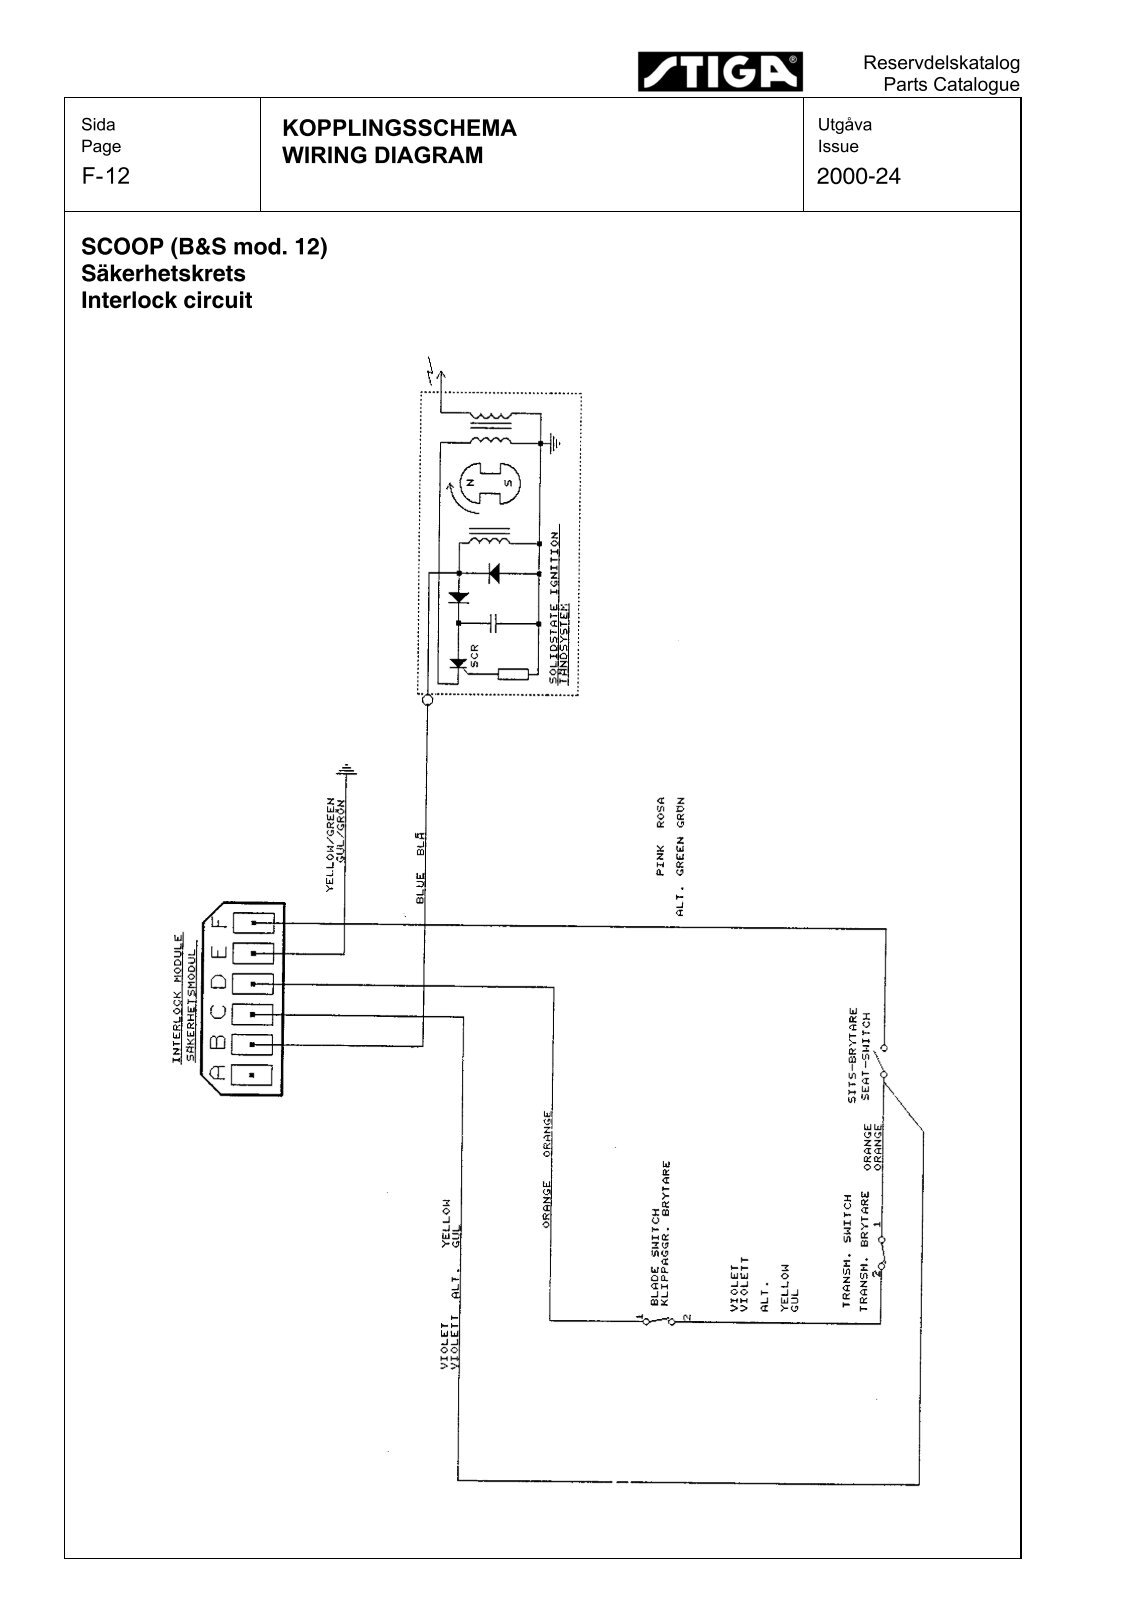 Kubota B7100 Parts Diagram | Online Wiring Diagram on kubota l2250 wiring diagram, kubota l2350 wiring diagram, kubota starter wiring diagram, kubota wiring schematic, kubota l3710 wiring diagram, kubota b5200 wiring diagram, kubota b2320 wiring diagram, kubota b7200 wiring diagram, kubota b1750 wiring diagram, kubota l2550 wiring diagram, kubota l2500 wiring diagram, kubota l4610 wiring diagram, kubota ignition switch wiring diagram, kubota tractor wiring diagrams, kubota mx5100 wiring diagram, kubota l260 wiring diagram, kubota b7800 wiring diagram, kubota bx25 wiring diagram, kubota bx1800 wiring diagram, kubota wiring diagram online,